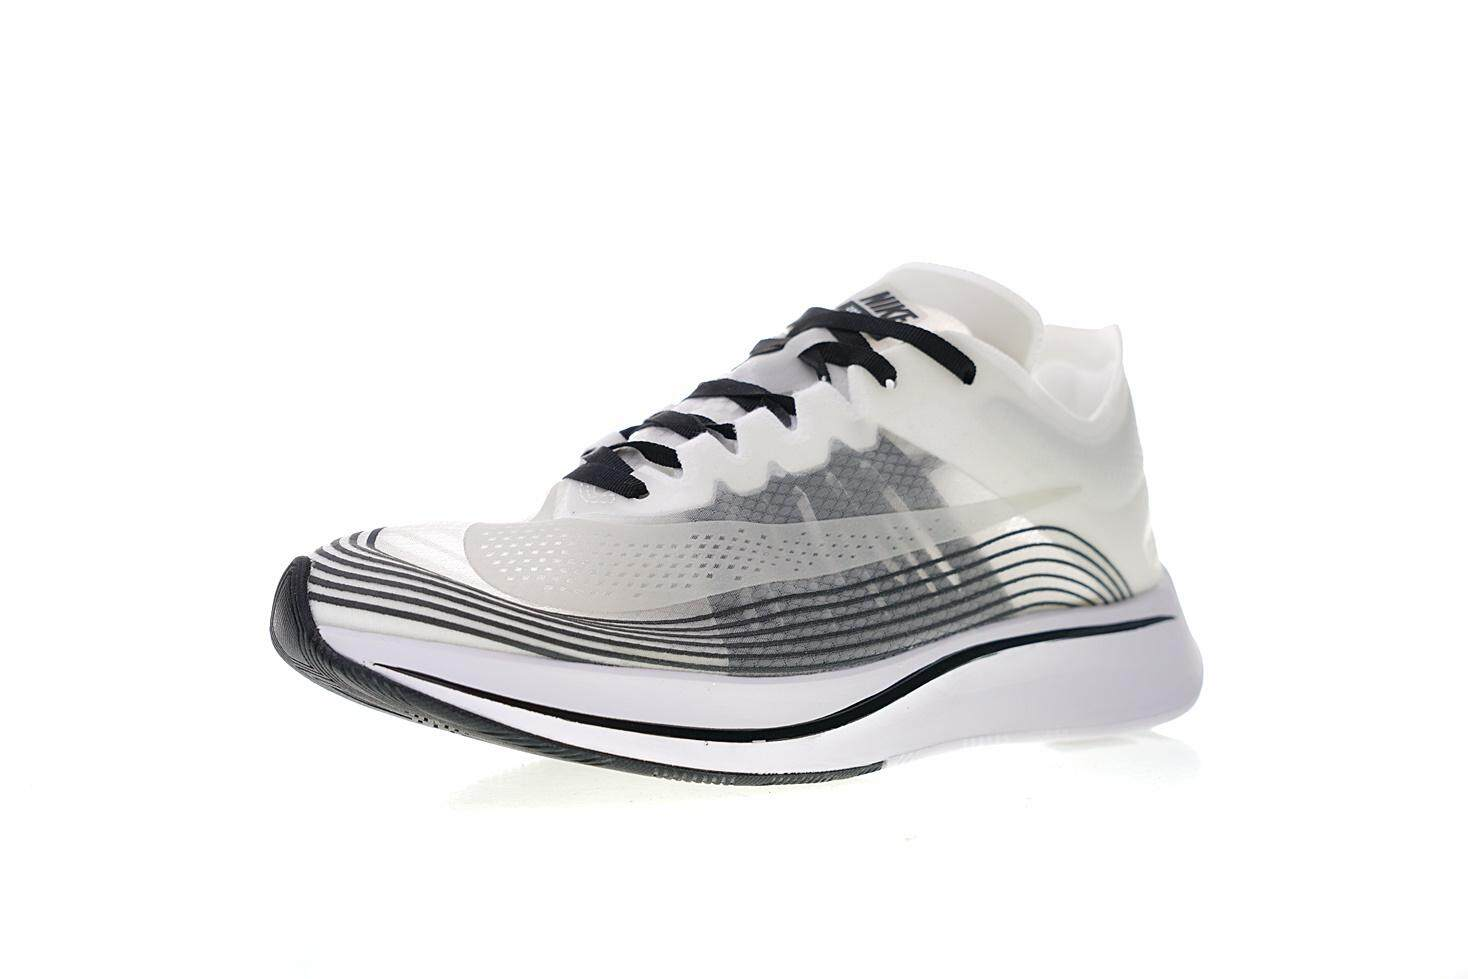 b7d8f7782289 Nike Philippines - Nike Running Shoes for Men for sale - prices ...